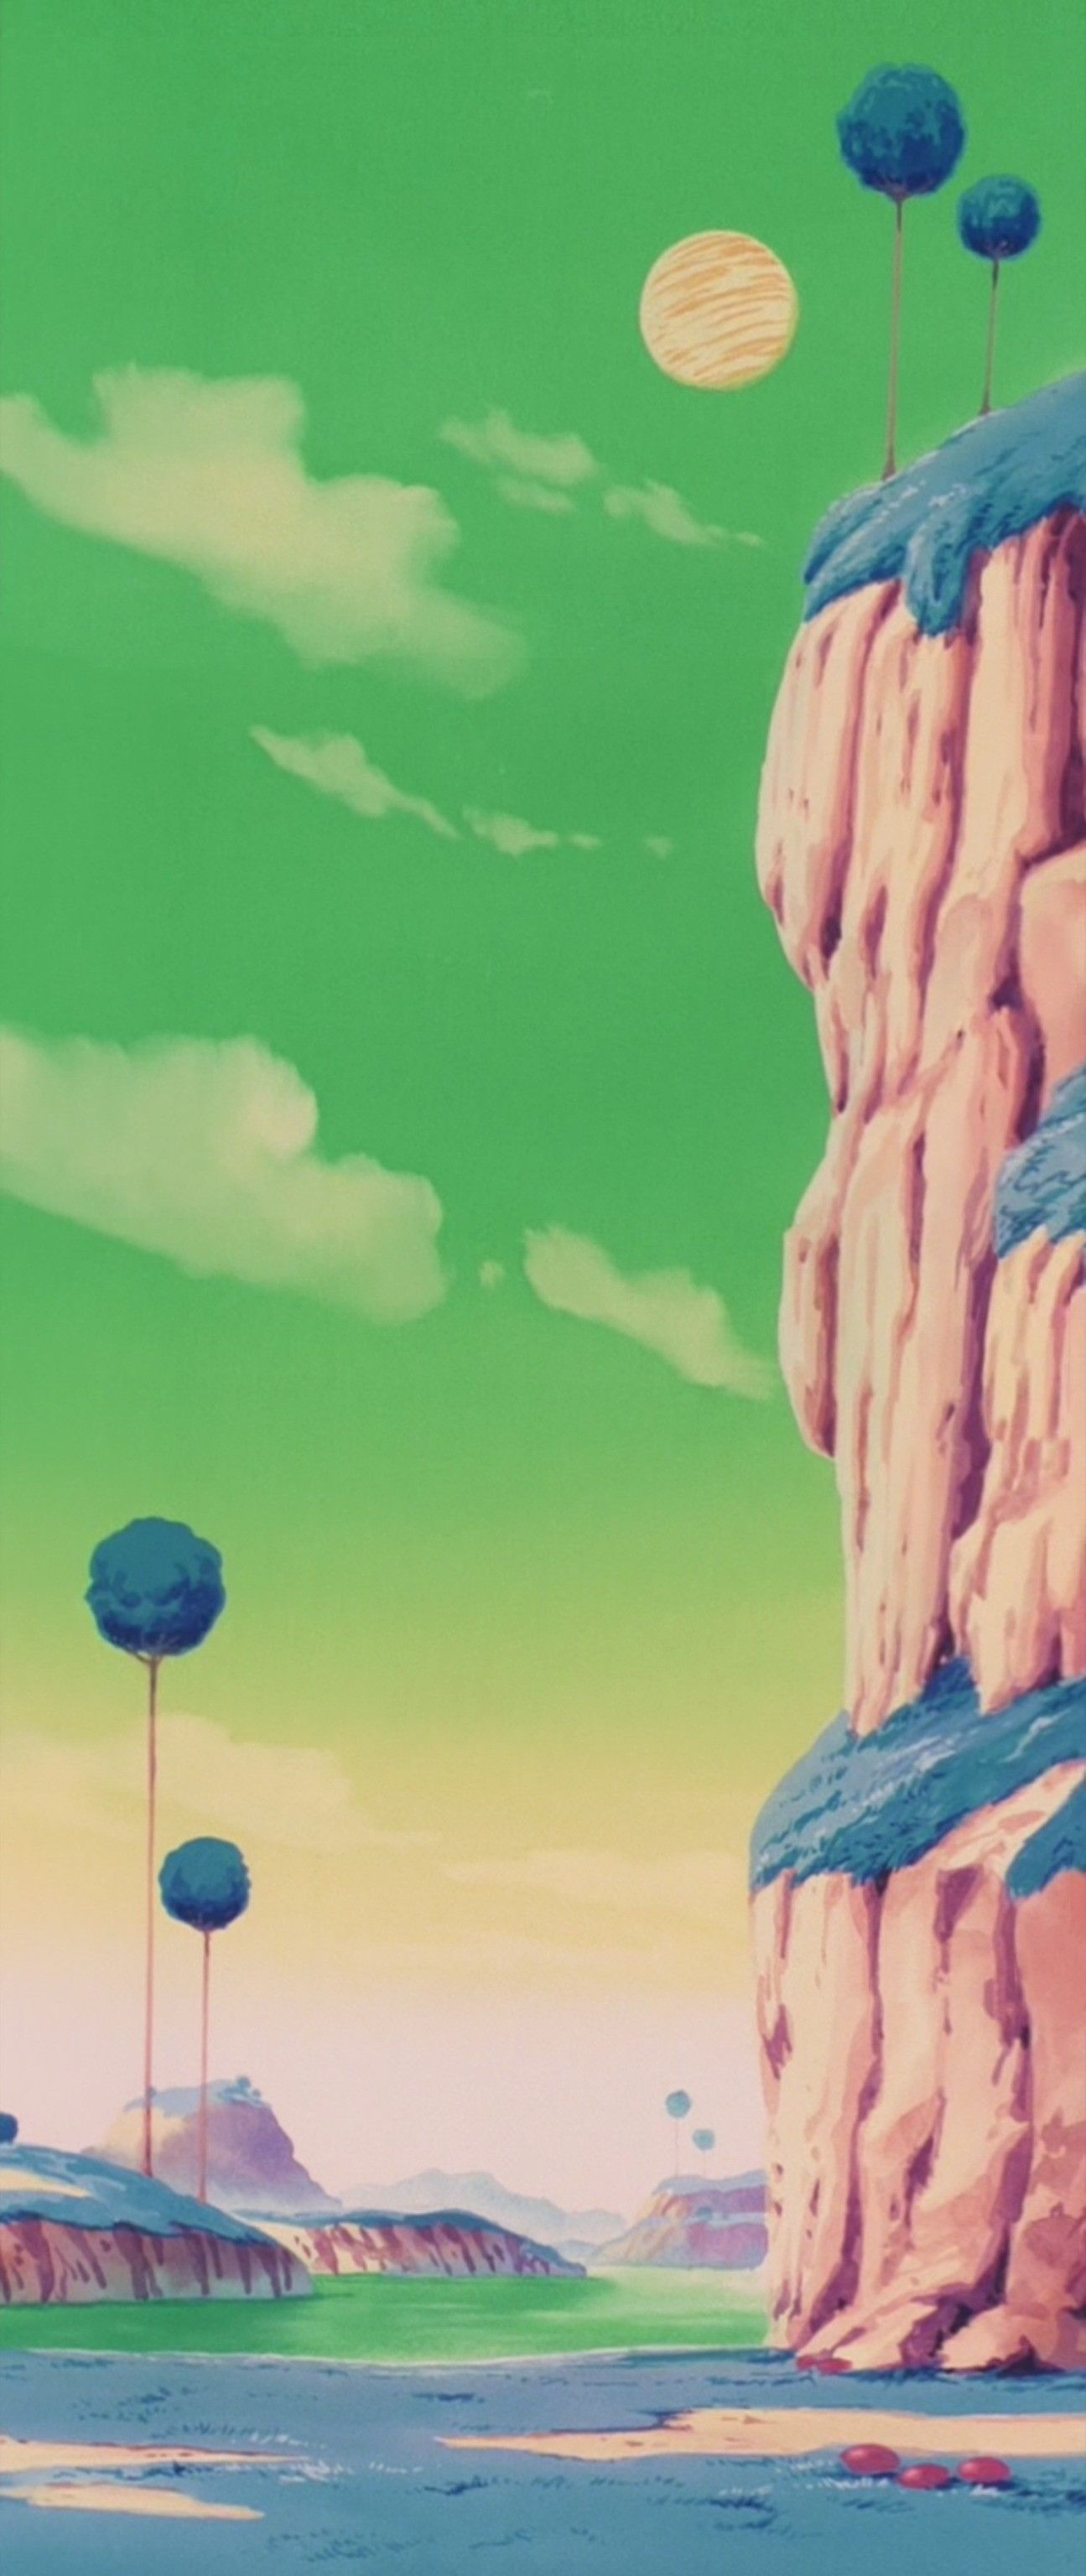 Pin By Thales Henrique On Dragon Ball Z Anime Dragon Ball Super Dragon Ball Wallpapers Dragon Ball Wallpaper Iphone